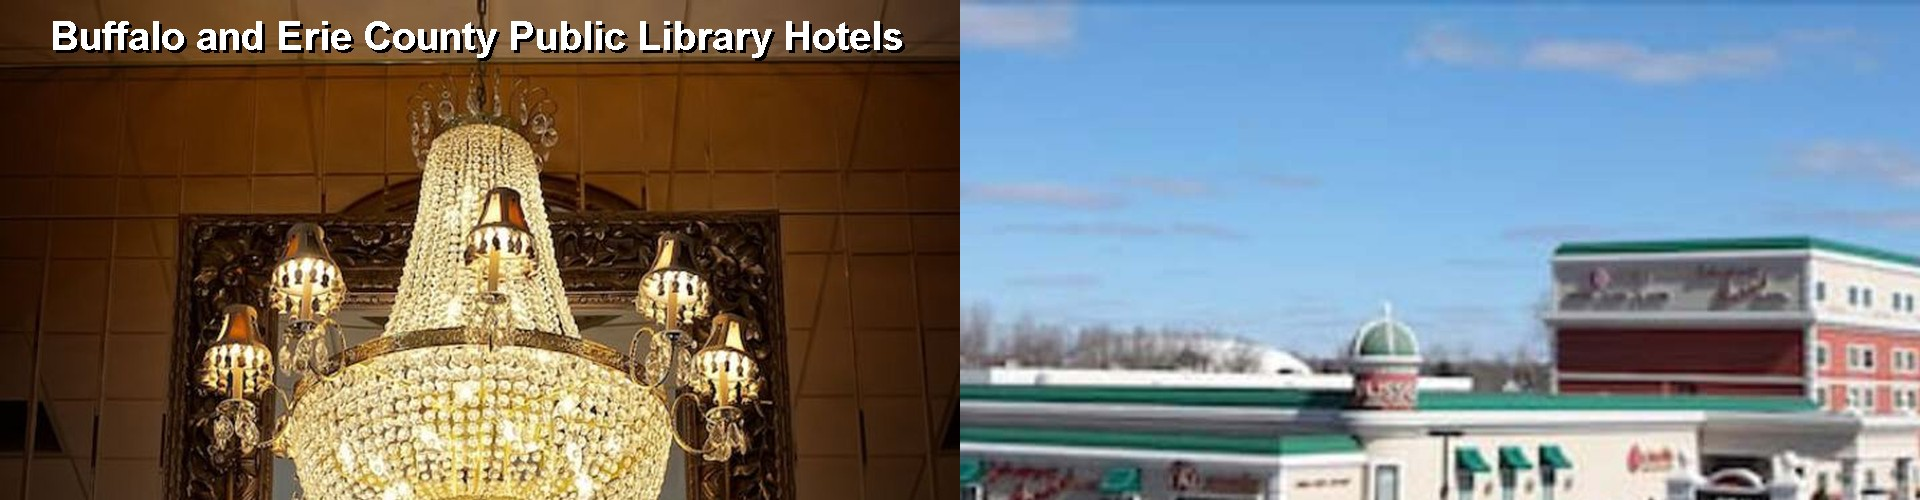 5 Best Hotels near Buffalo and Erie County Public Library